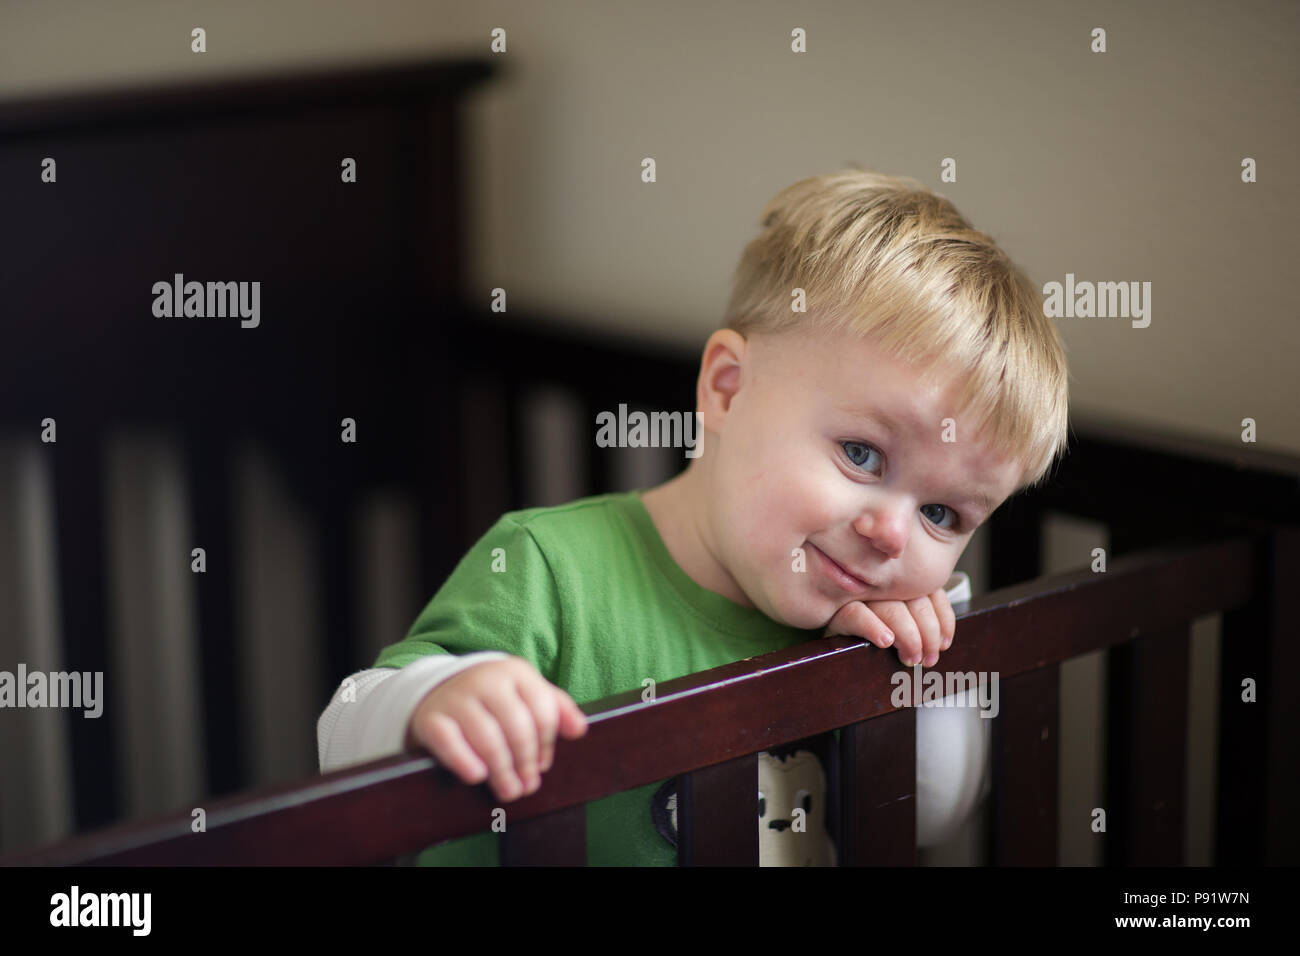 Toddler is in his crib smiling while wanting to get out. - Stock Image